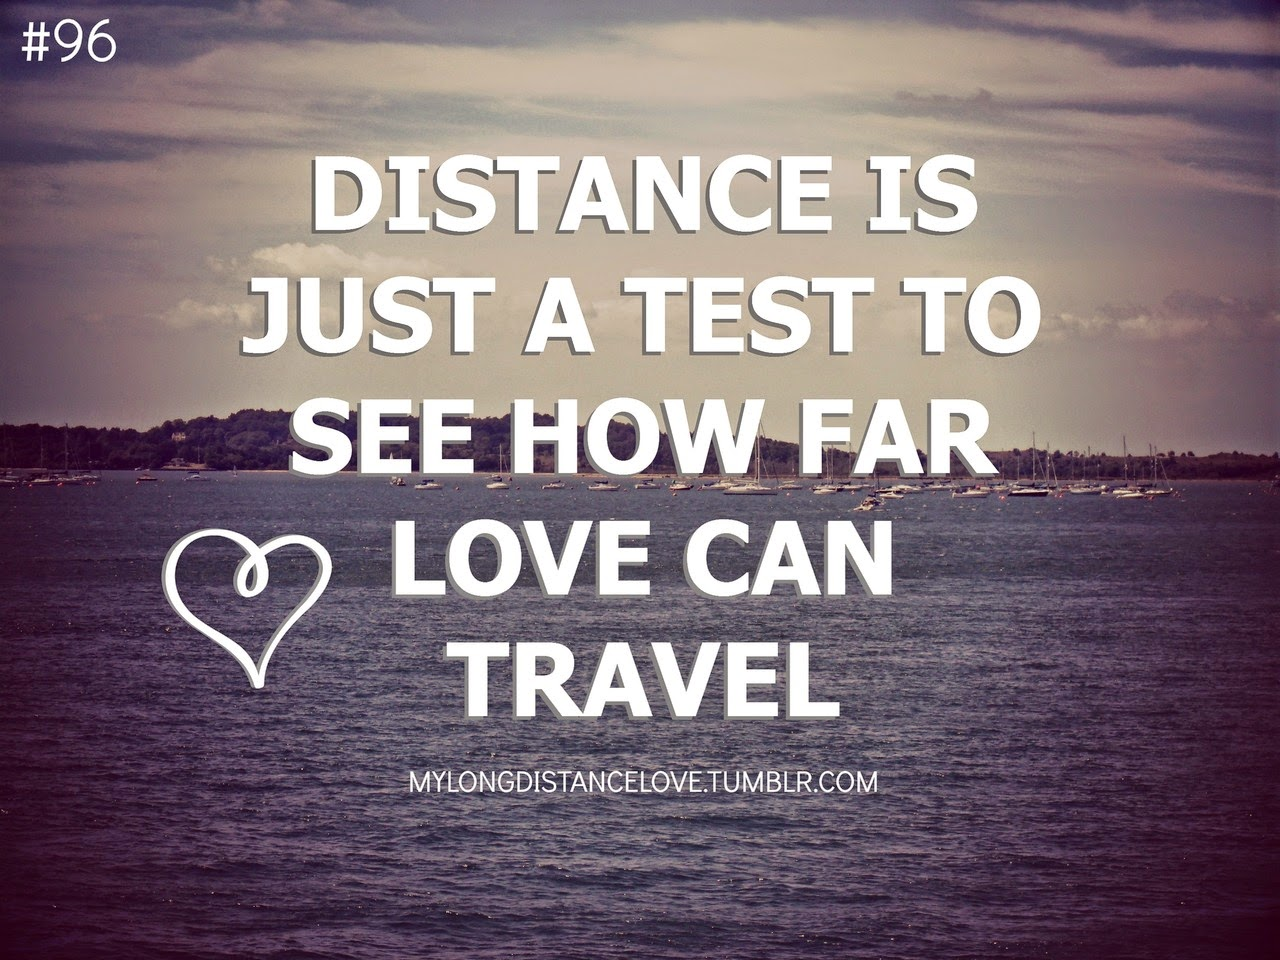 Love Quotes For Him Long Distance Images : Long Distance Love Quotes For Him From Her. QuotesGram